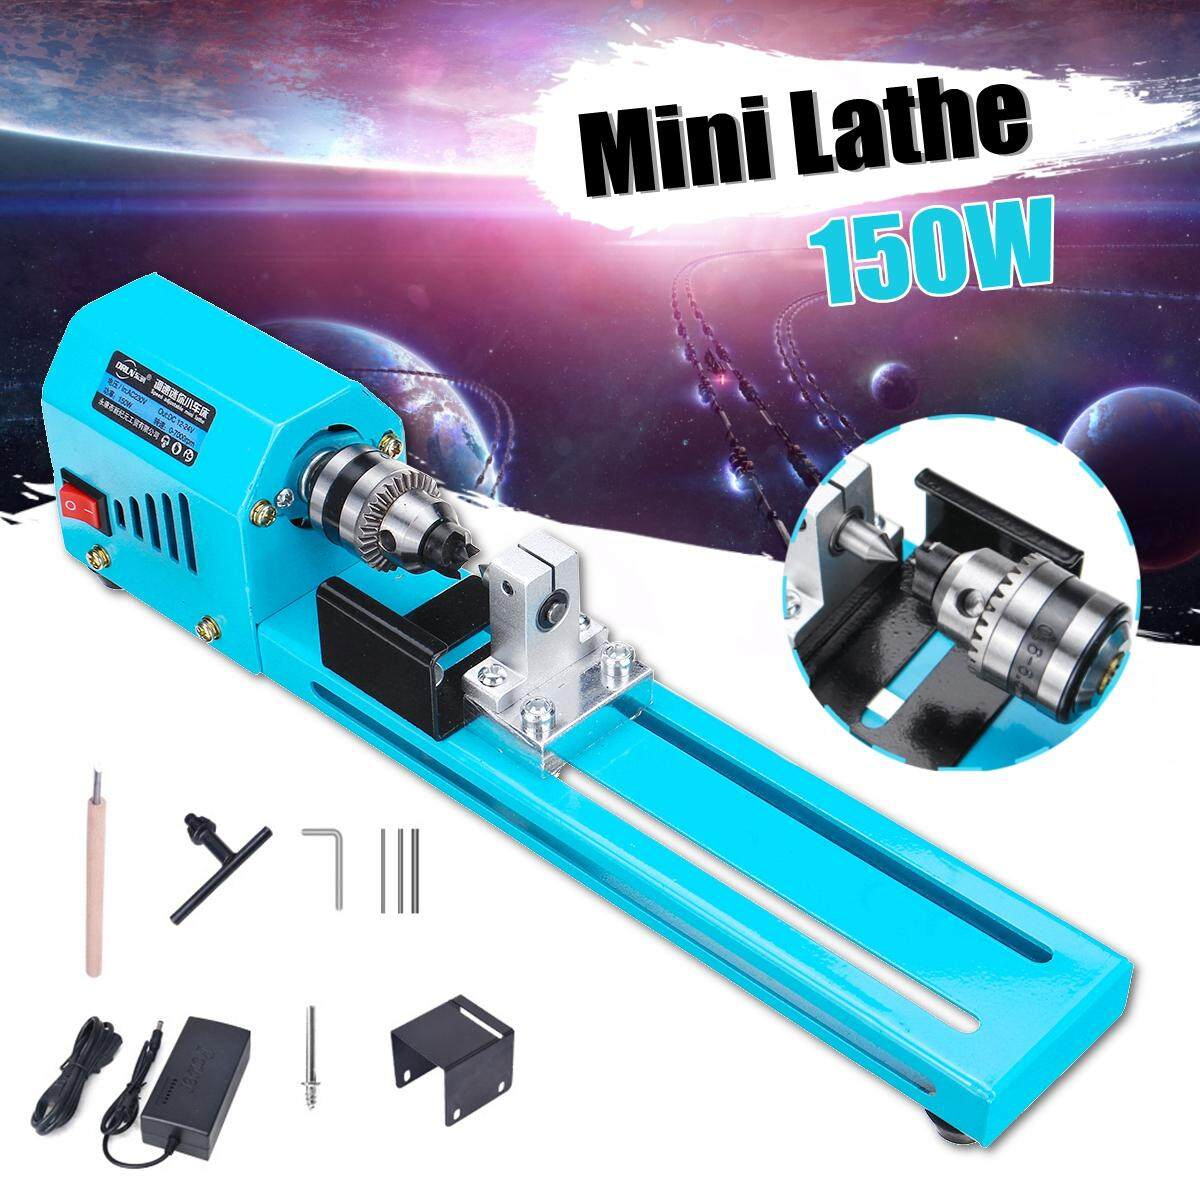 7 Speed Regulation Upgraded Mini Lathe Beads Machine 24V 150W Polisher Woodwork Wood Lathe